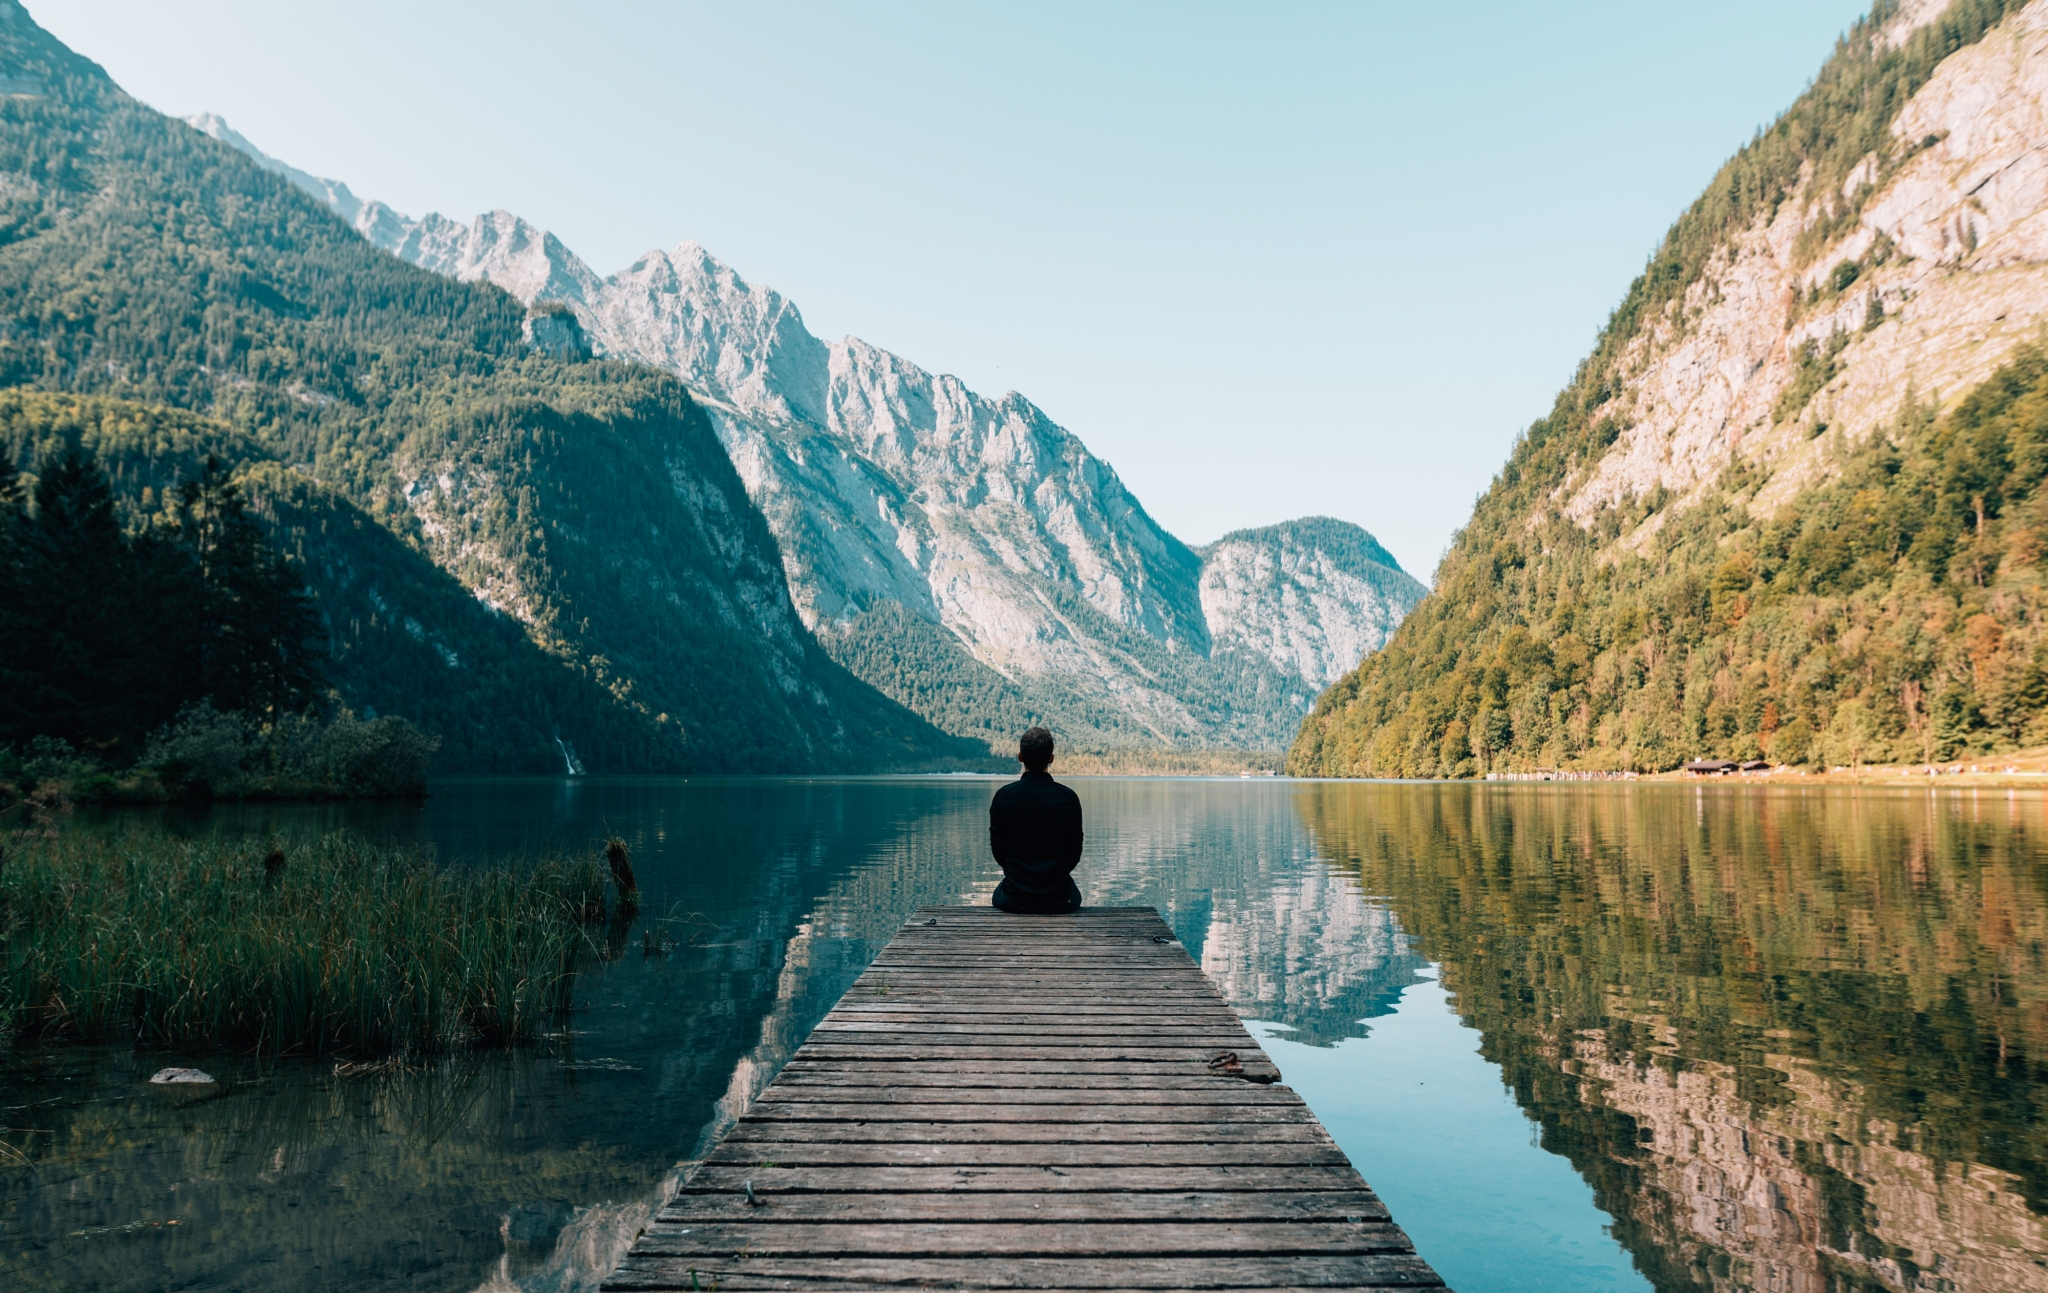 Man sitting on a pier amongst a lake and mountains